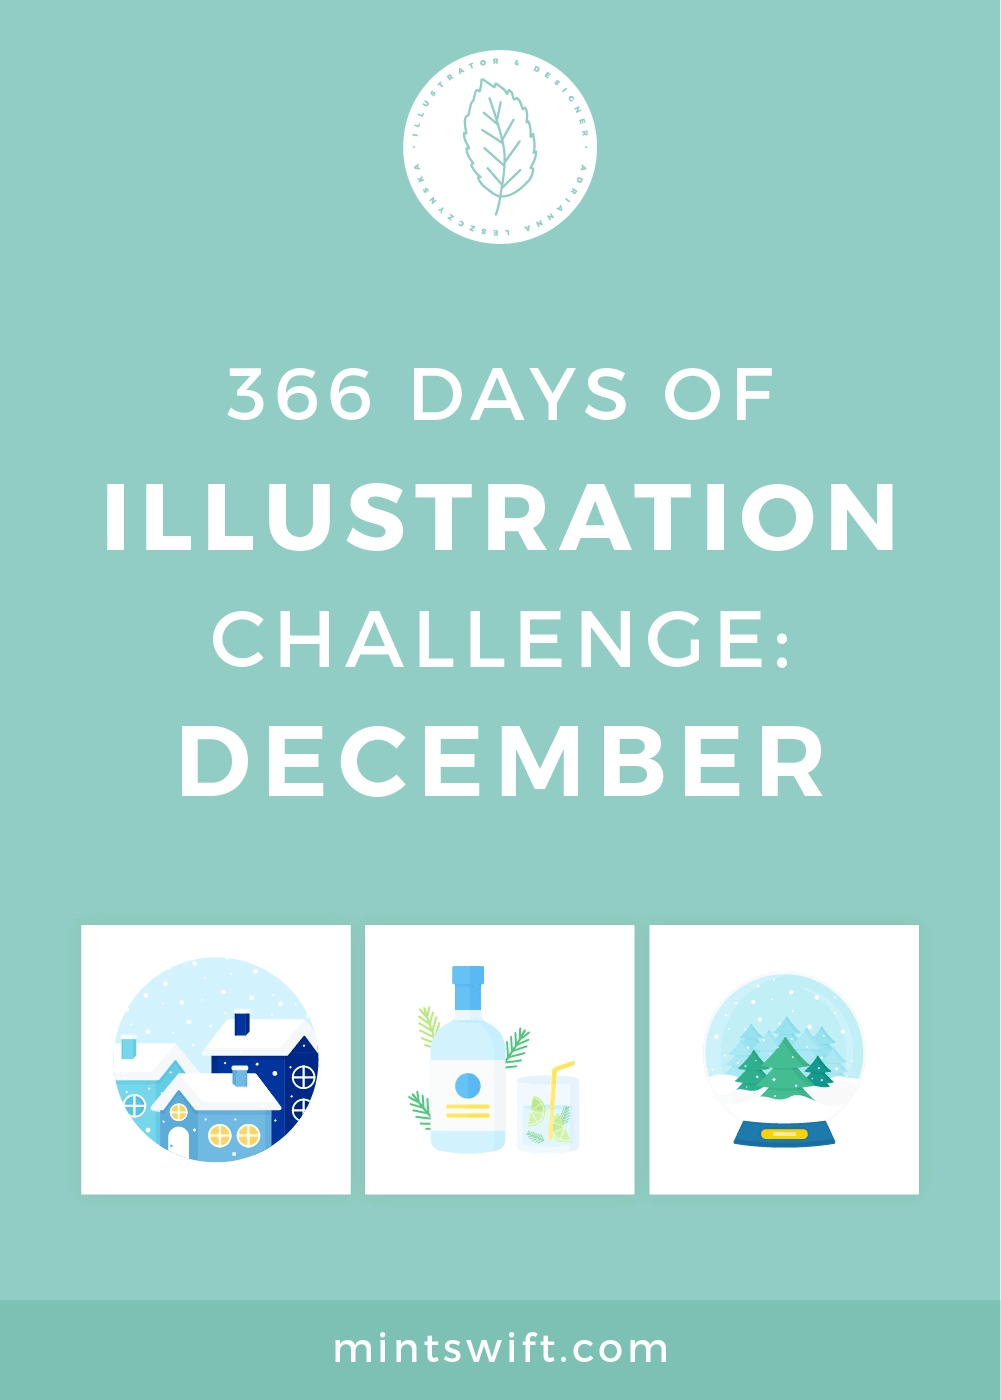 366 Days of Illustration Challenge - December by MintSwift. The twelfth (last) month of illustration challenge (day 336-366). Vector illustrations in flat design style about Christmas & Winter.